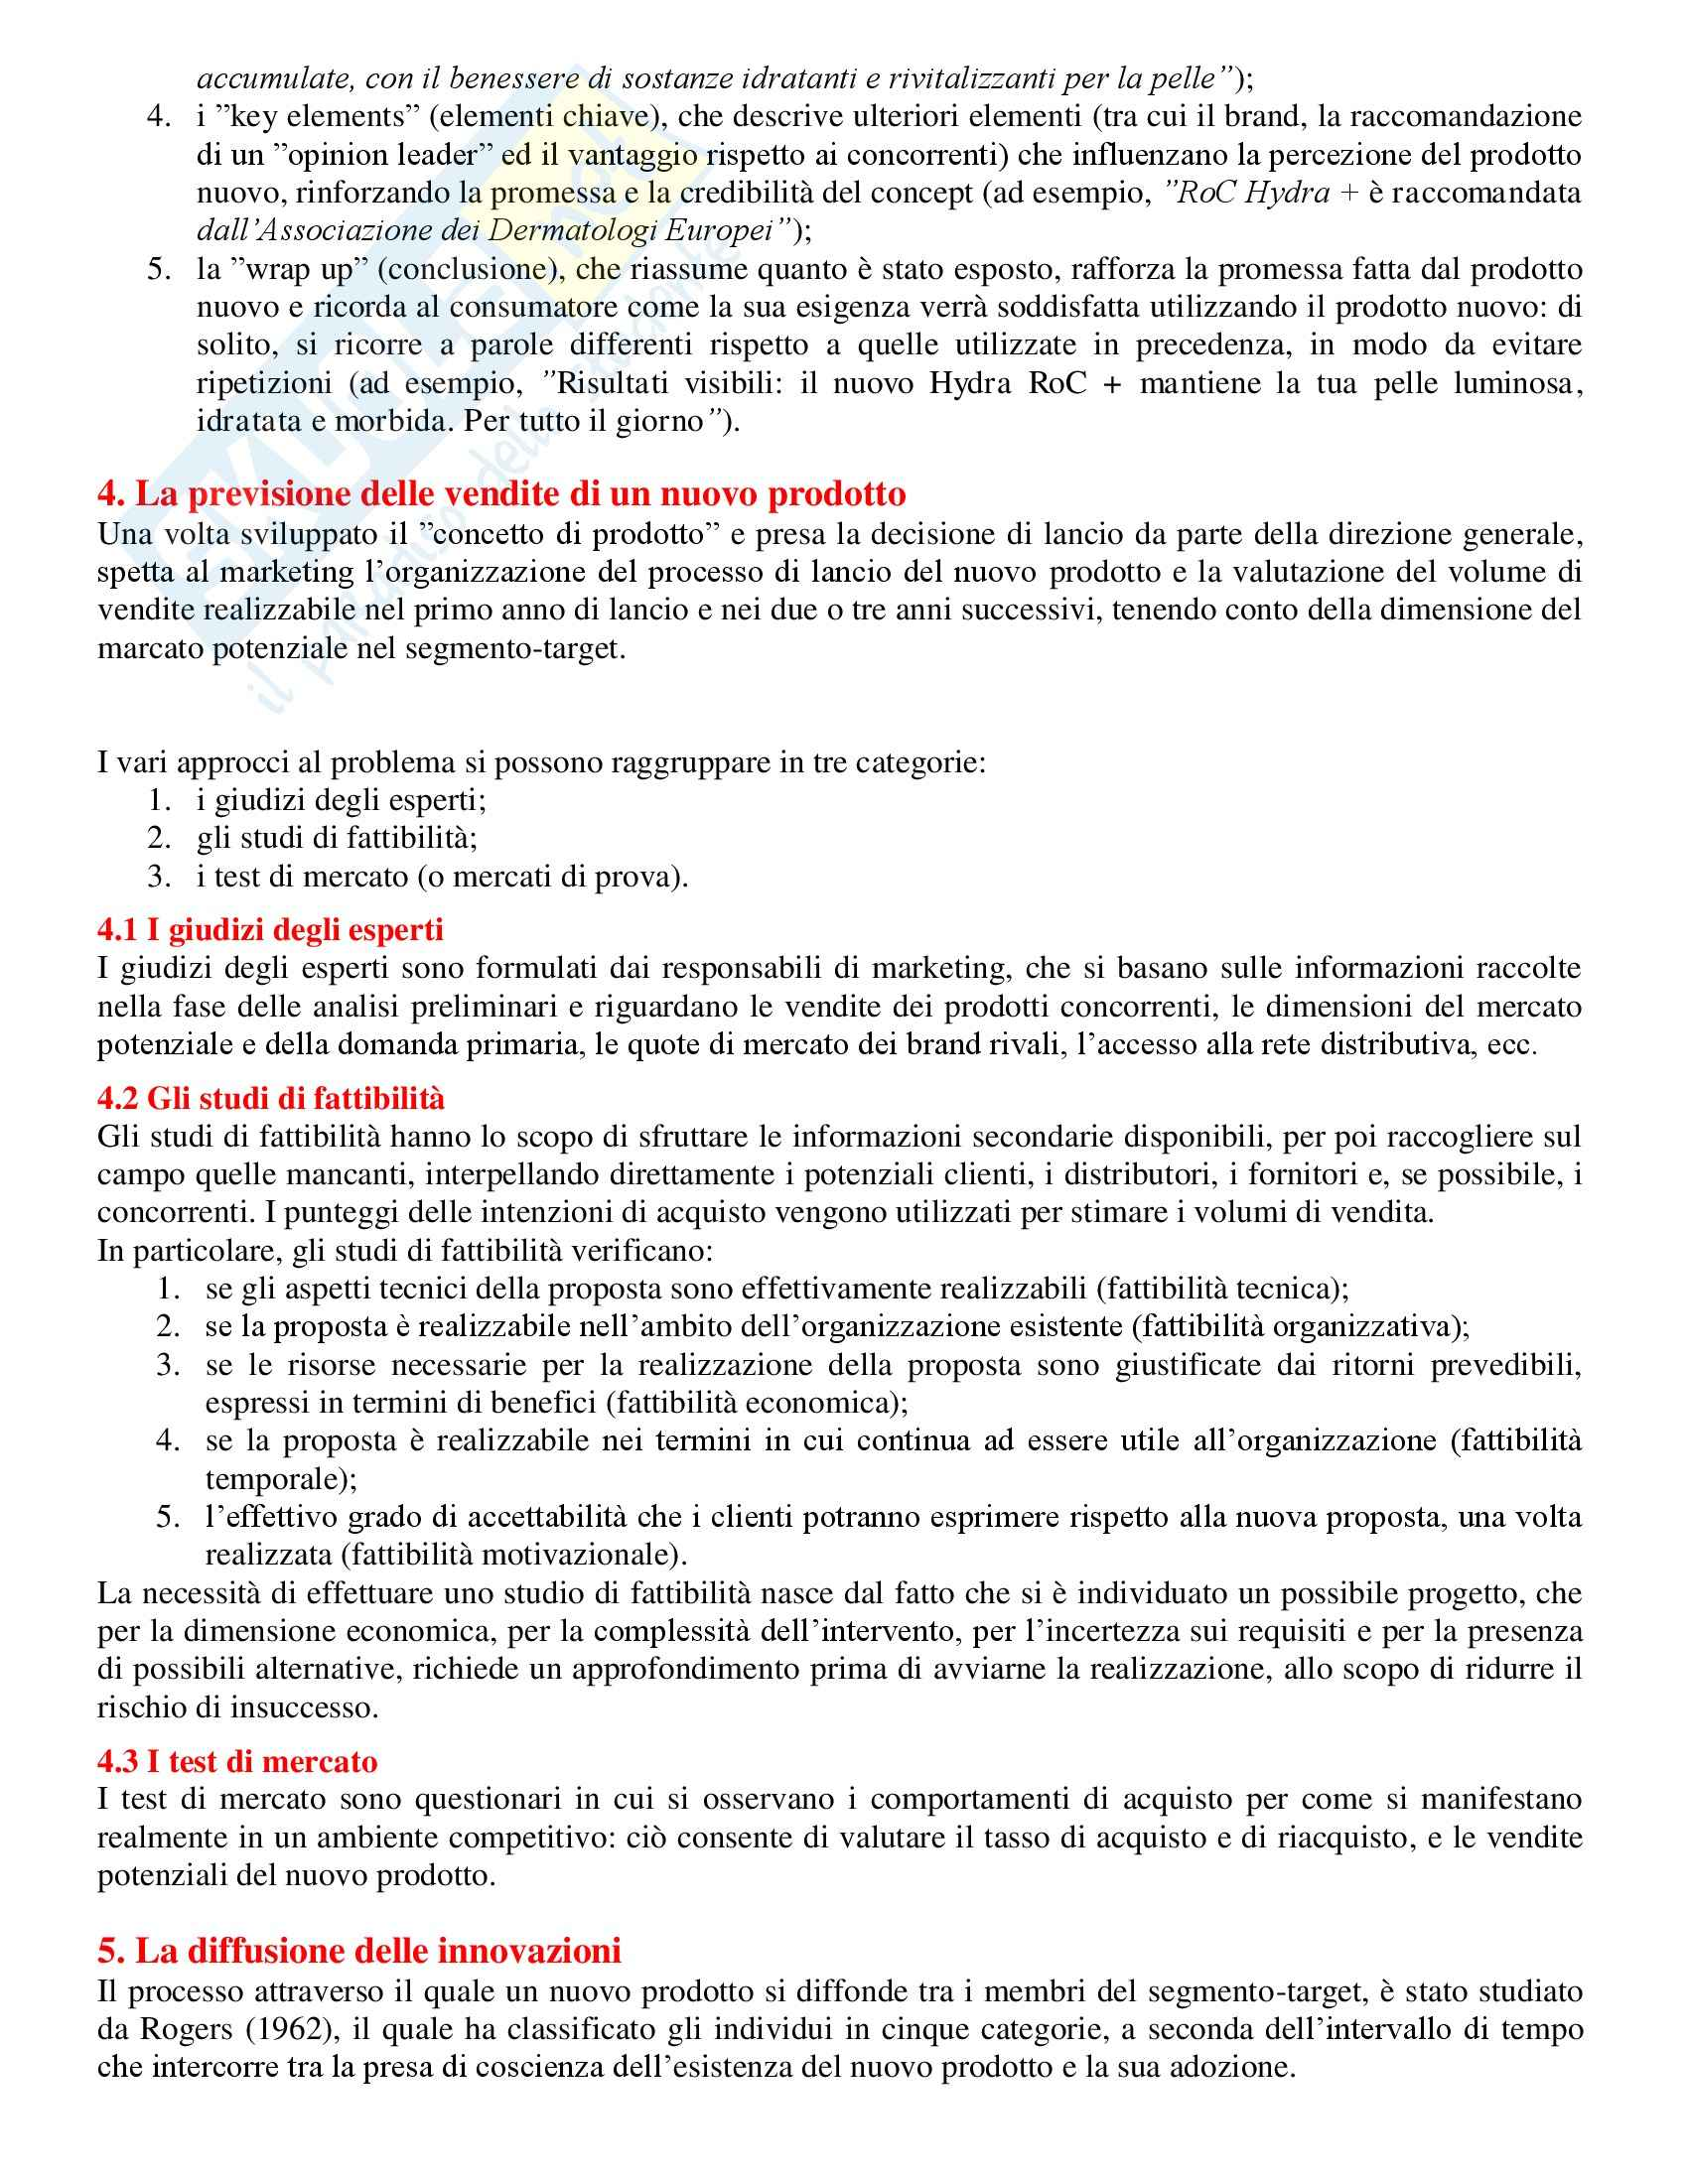 Strategie di marketing - Appunti Pag. 41